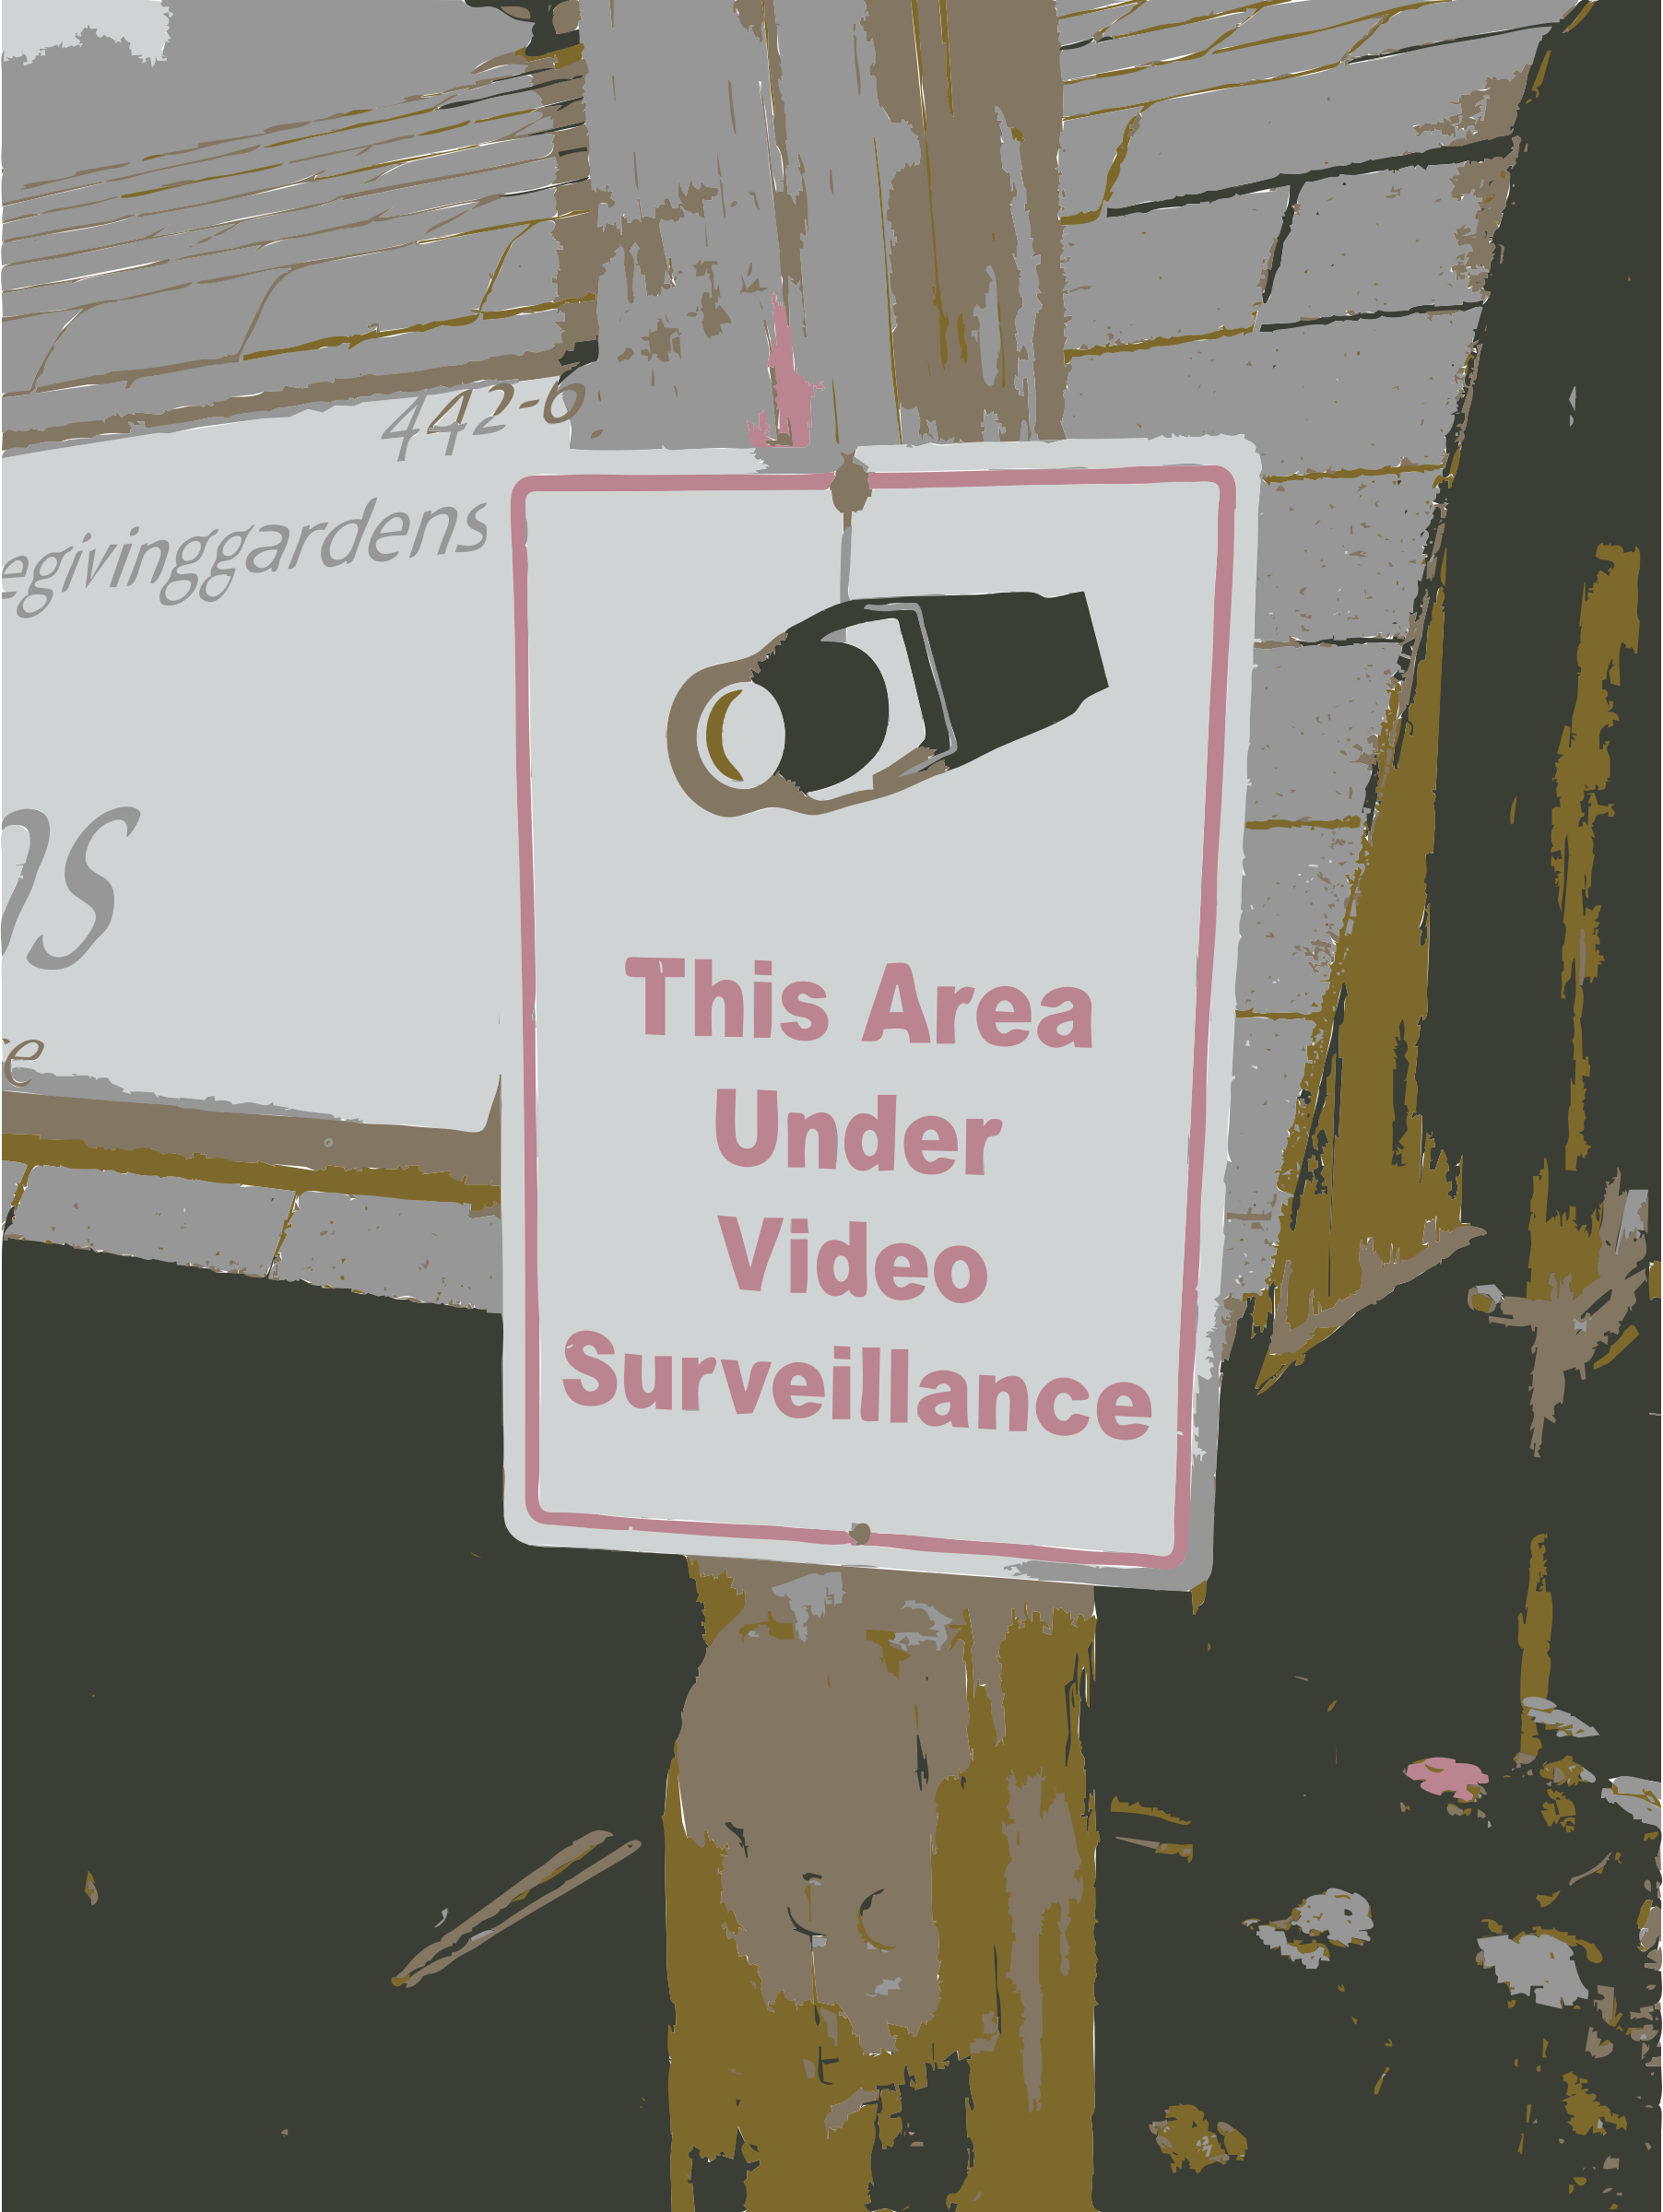 More video surveillance by rejon